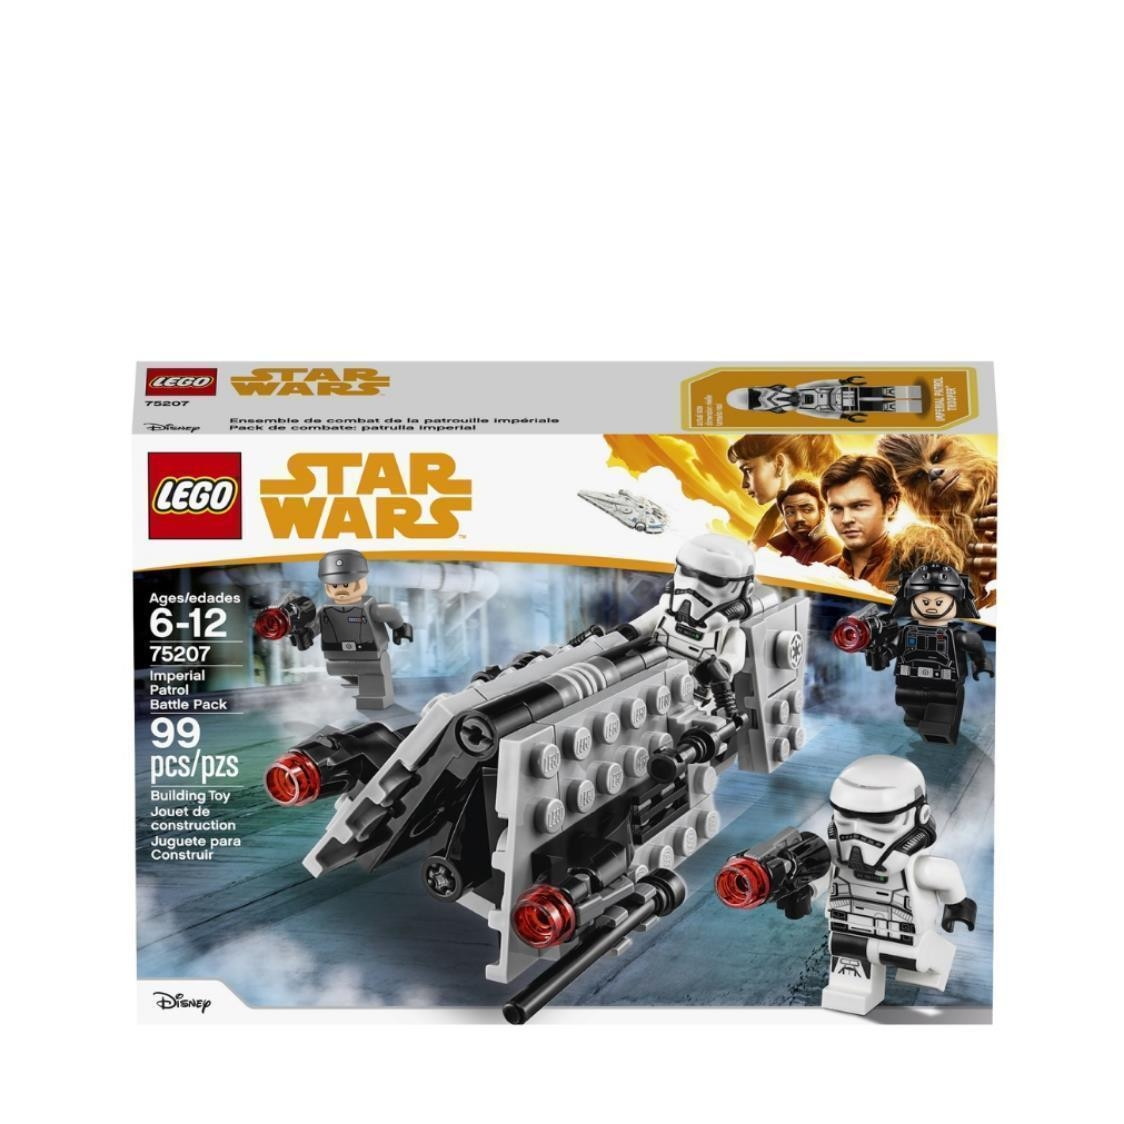 Imperial Patrol Battle Pack 75207